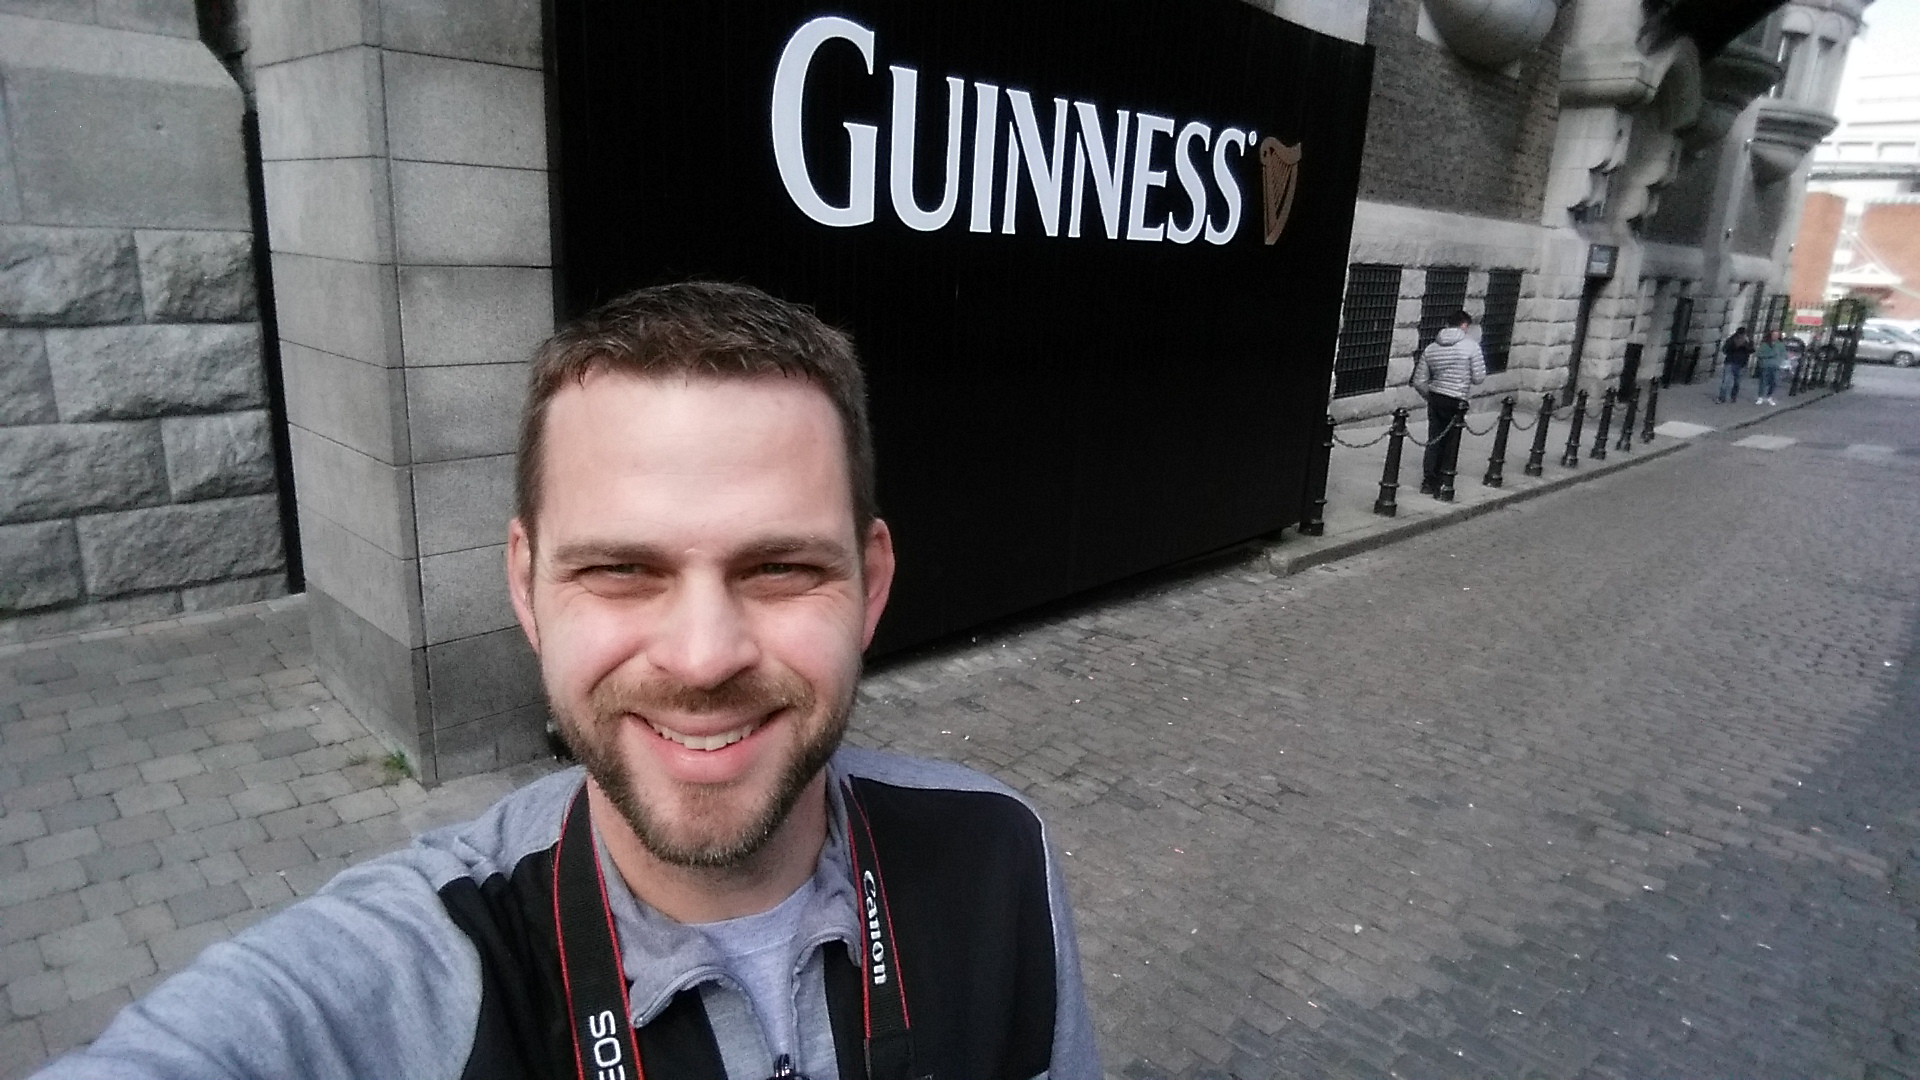 Our Trip to Dublin, Ireland (Plus St. Patrick's Day Photos!)